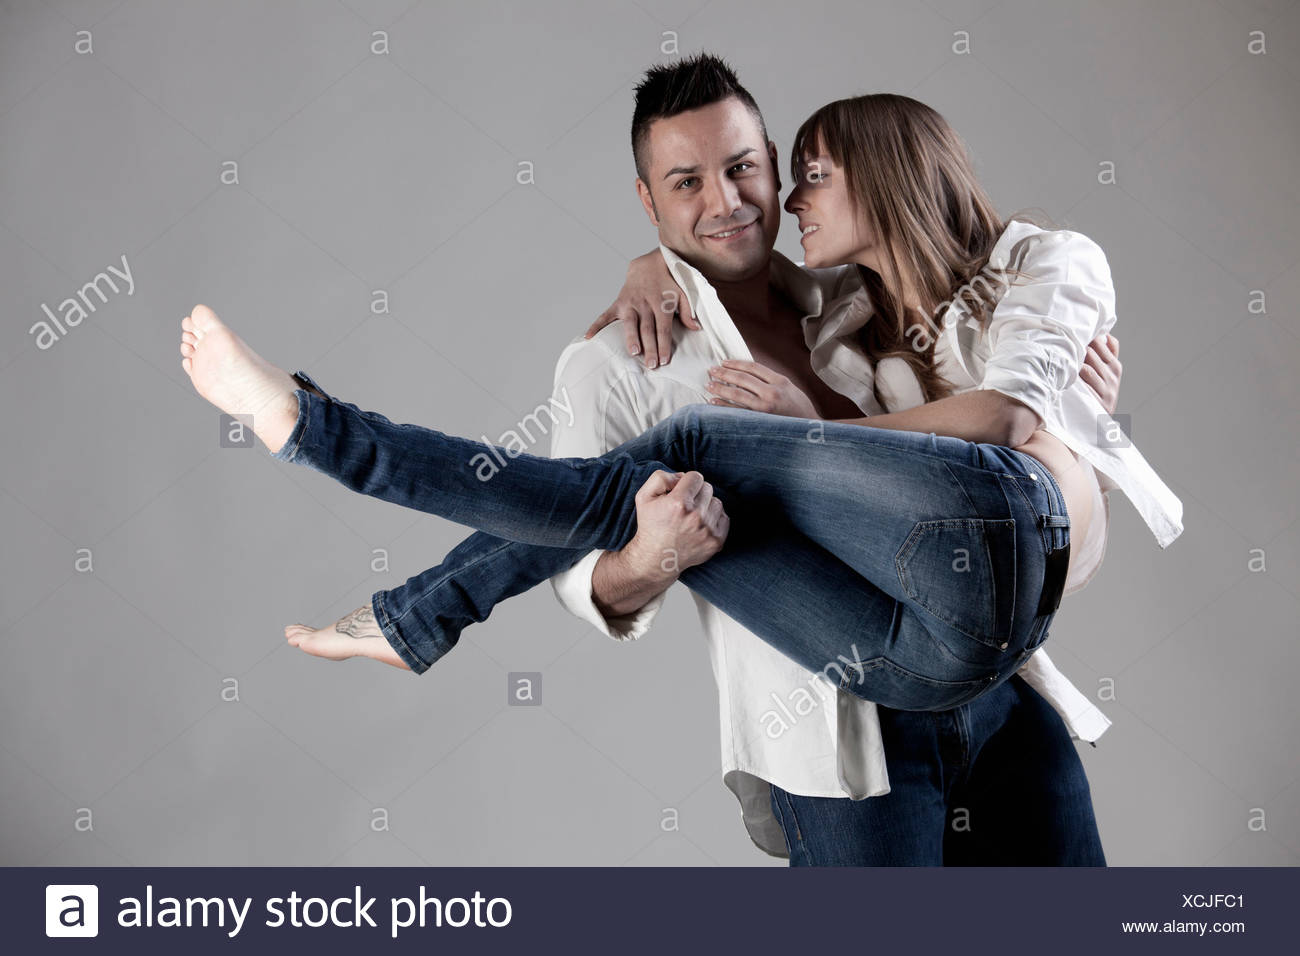 Smiling man carrying girlfriend Banque D'Images